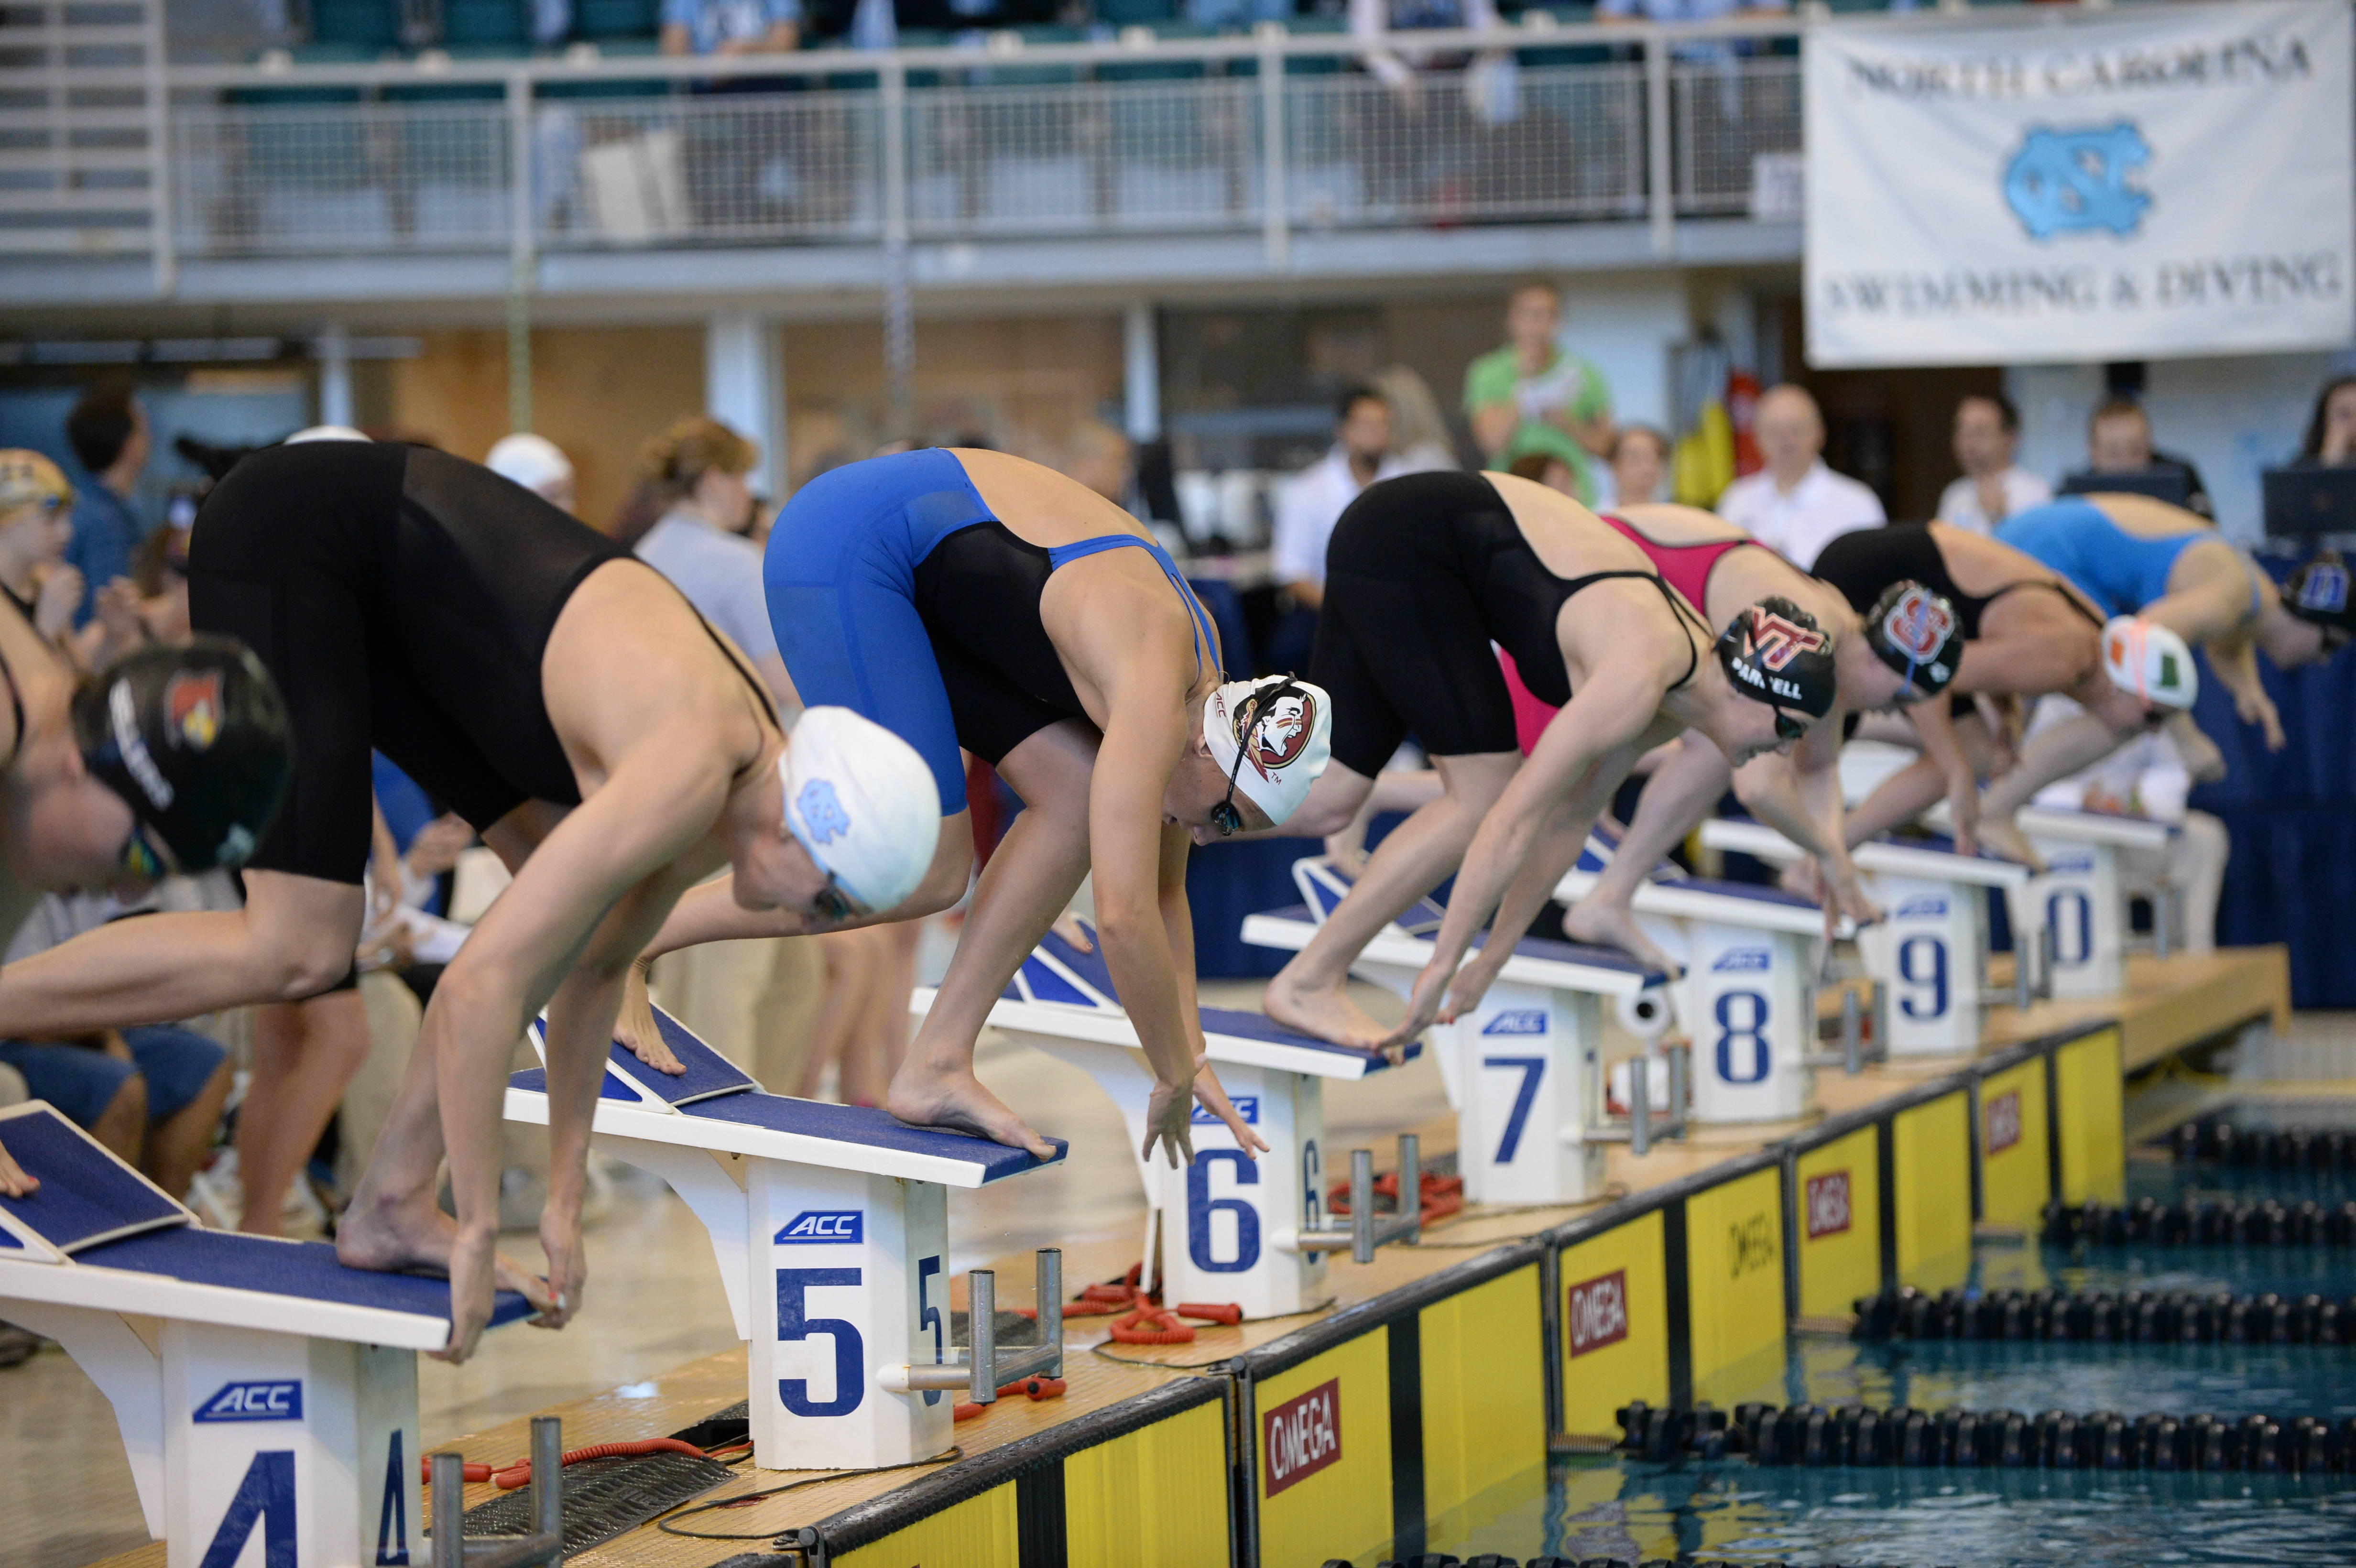 Sami Pochowski gets off the block in the 100 breast - Mitch White